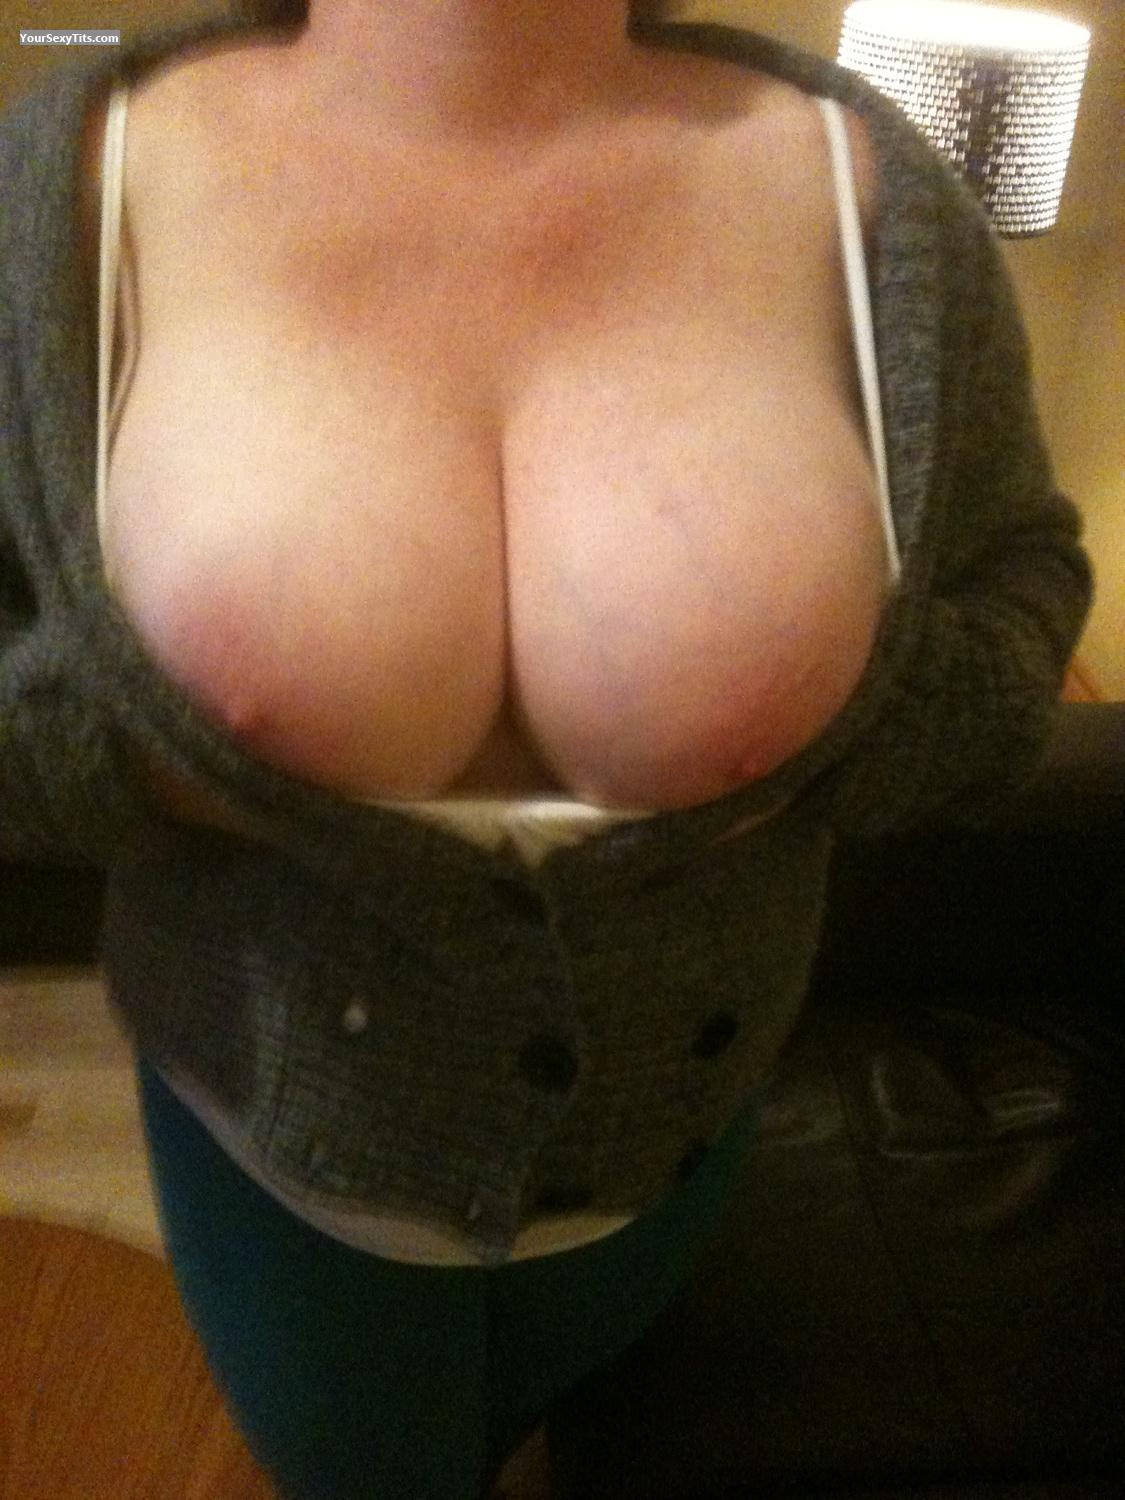 Tit Flash: Very Big Tits By IPhone - Canada's Finest from Canada